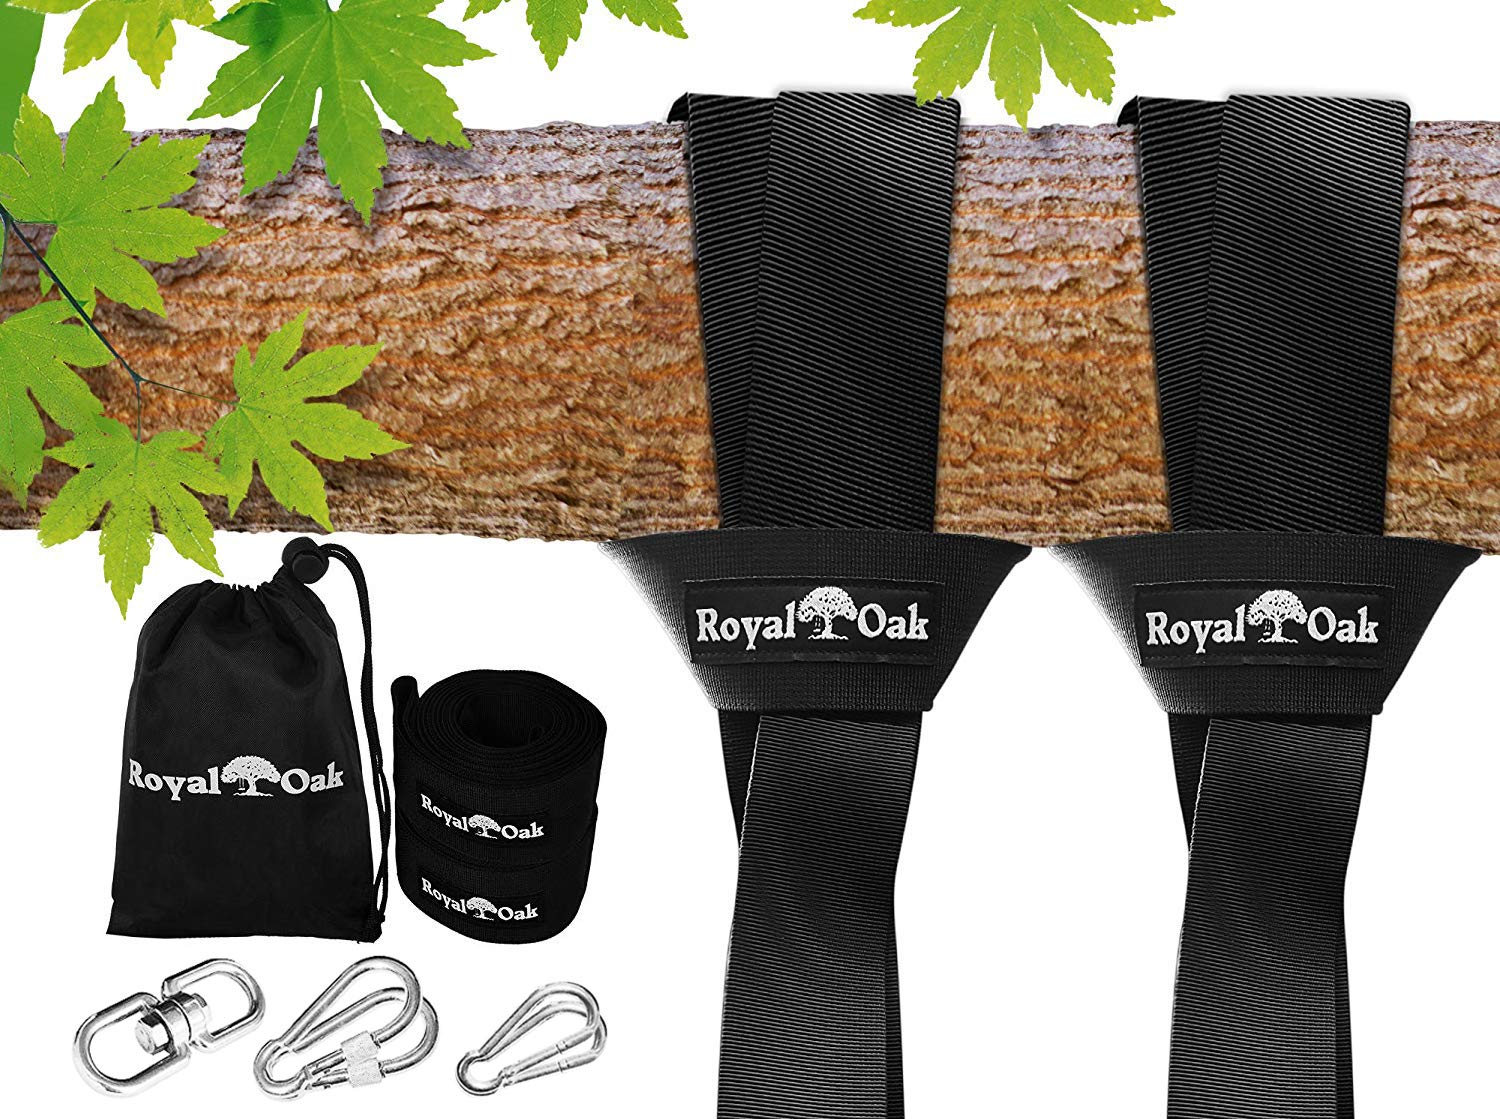 Royal Oak Easy Hang (12FT) Tree Swing Strap X2 - Holds 4400lbs. - Heavy Duty Carabiner - Bonus Spinner - Perfect Tire Saucer Swings - 100% Waterproof - Easy Picture Instructions - Carry Bag Included!